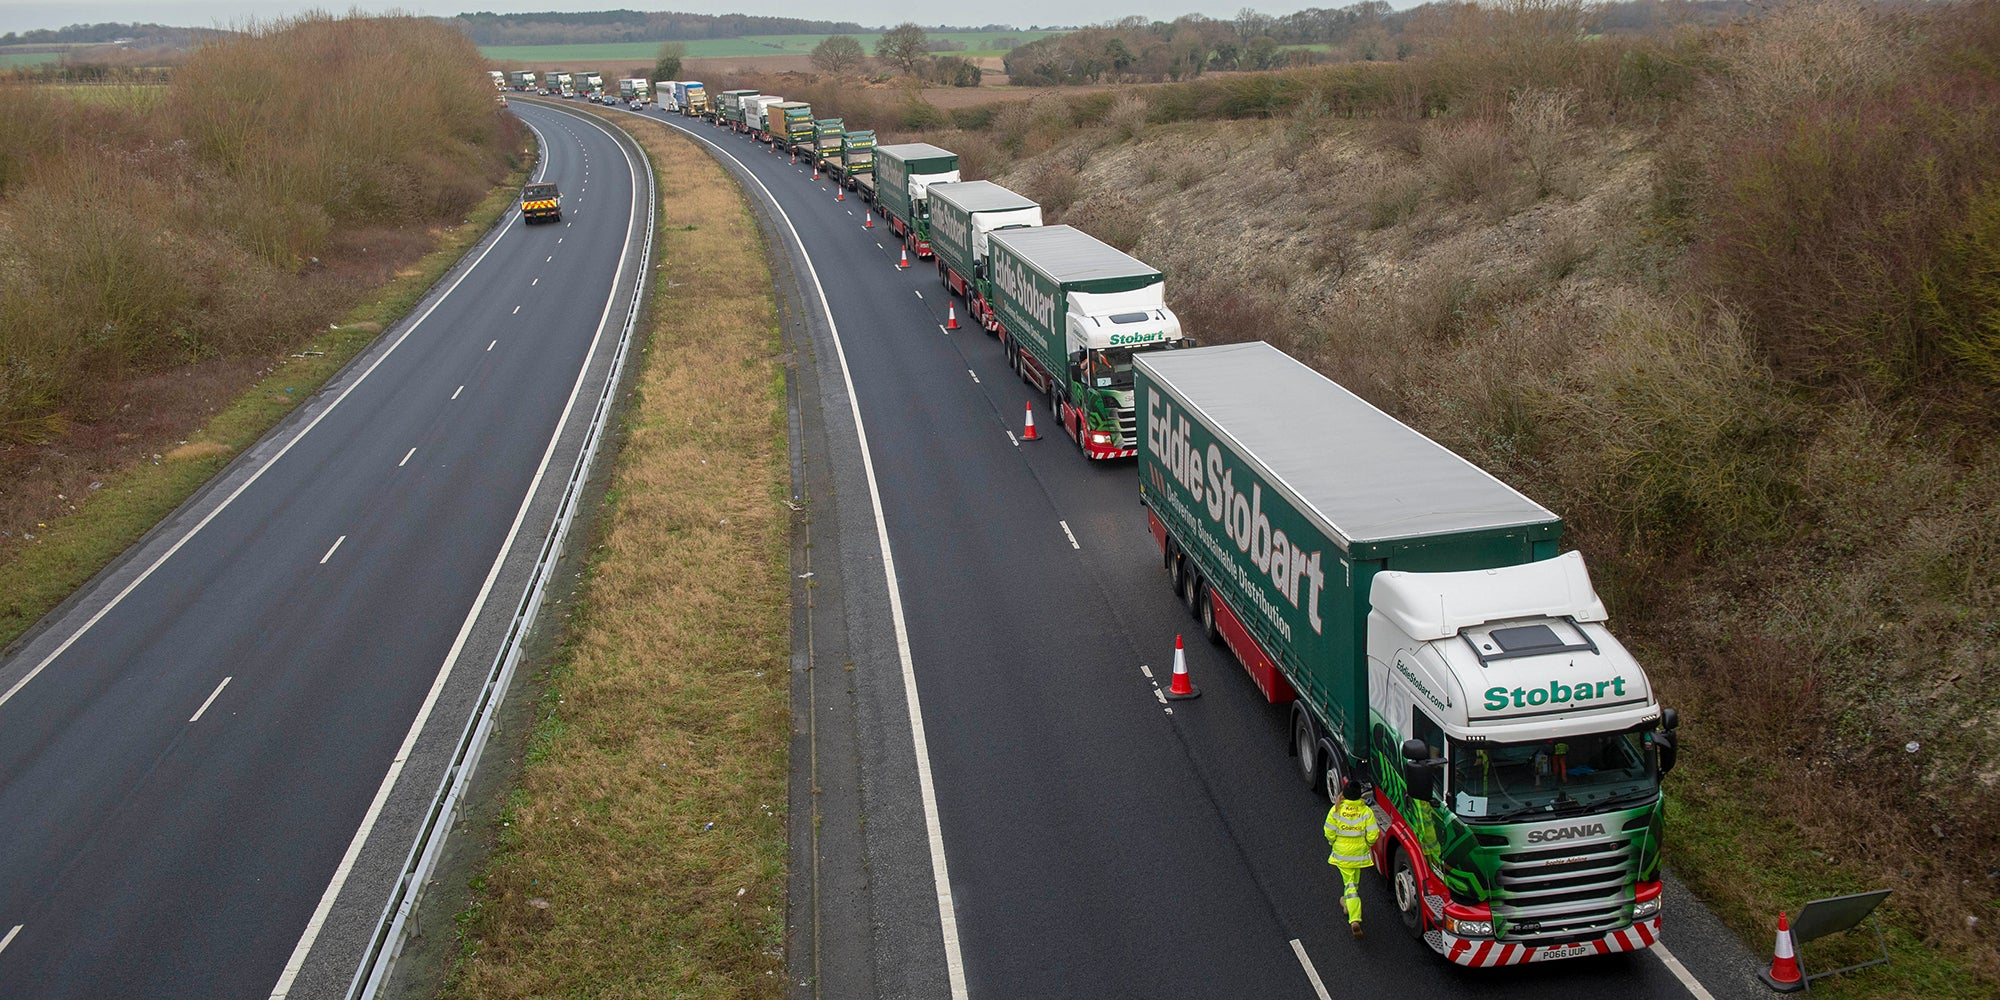 Ministers brace for no-deal Brexit disruption with £60m plans for motorway barrier